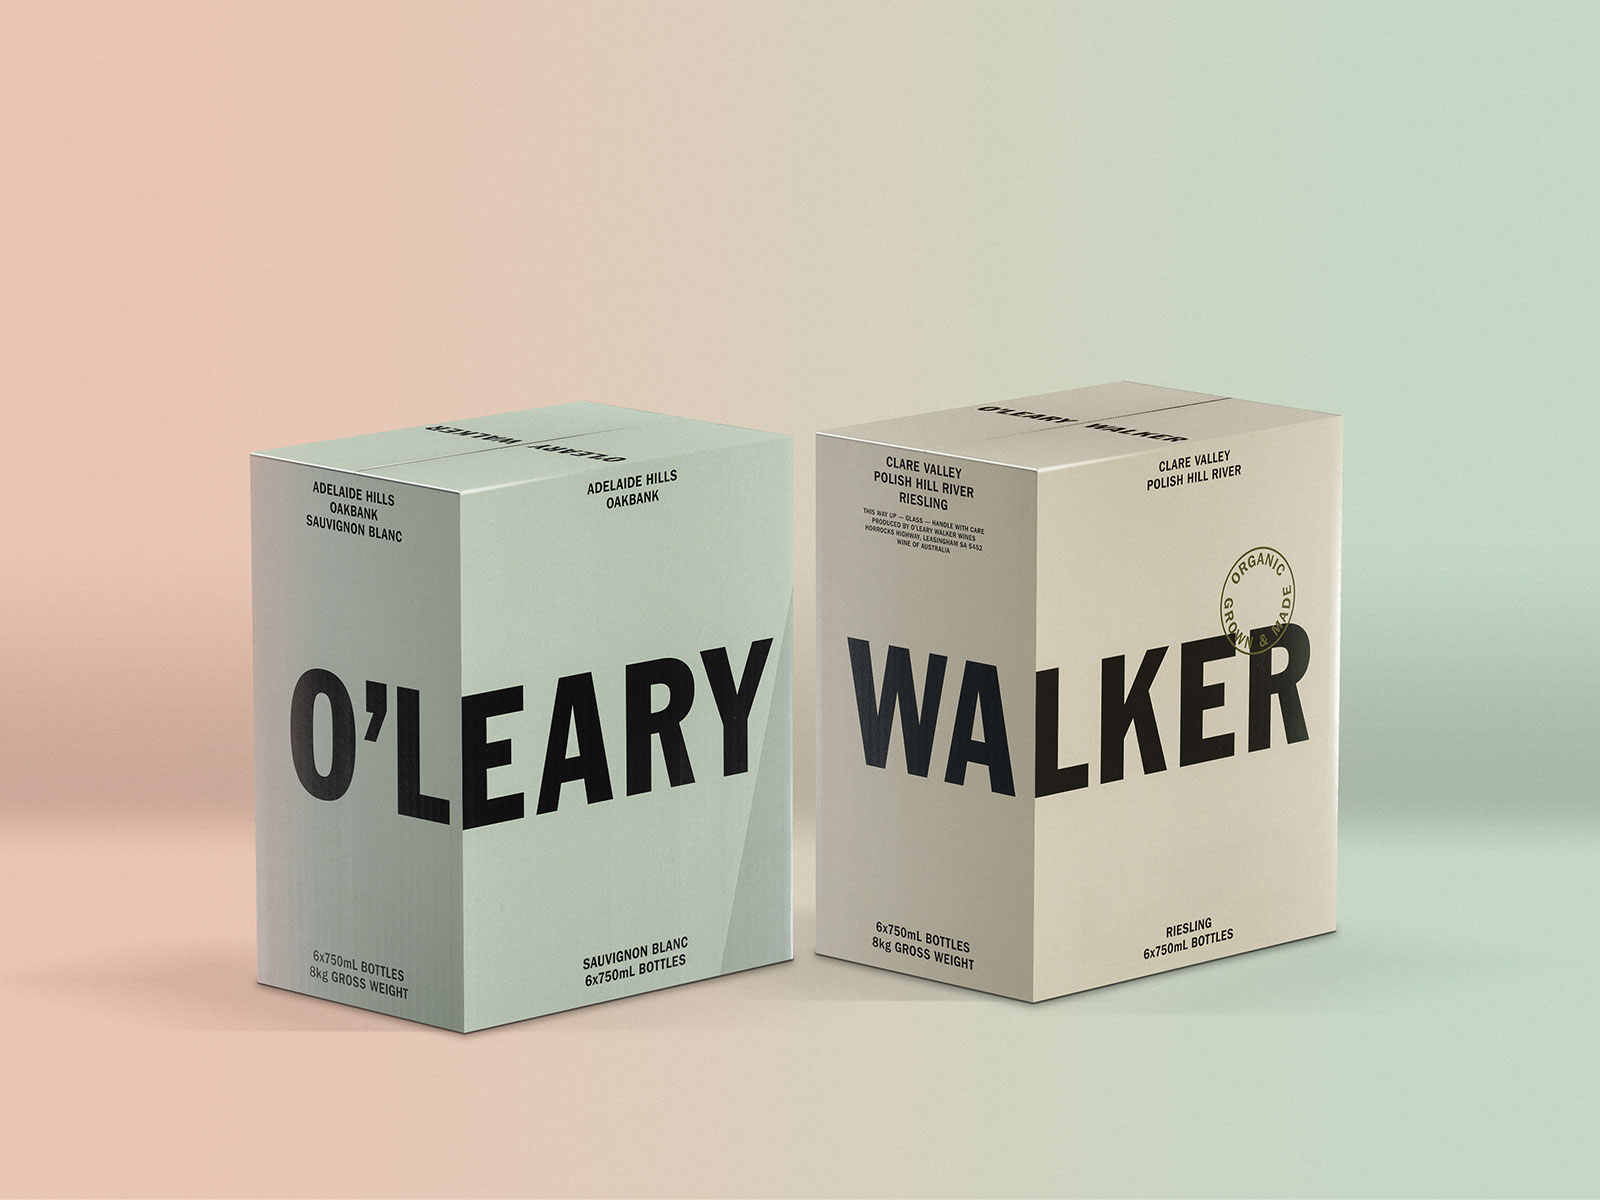 O'Leary Walker image